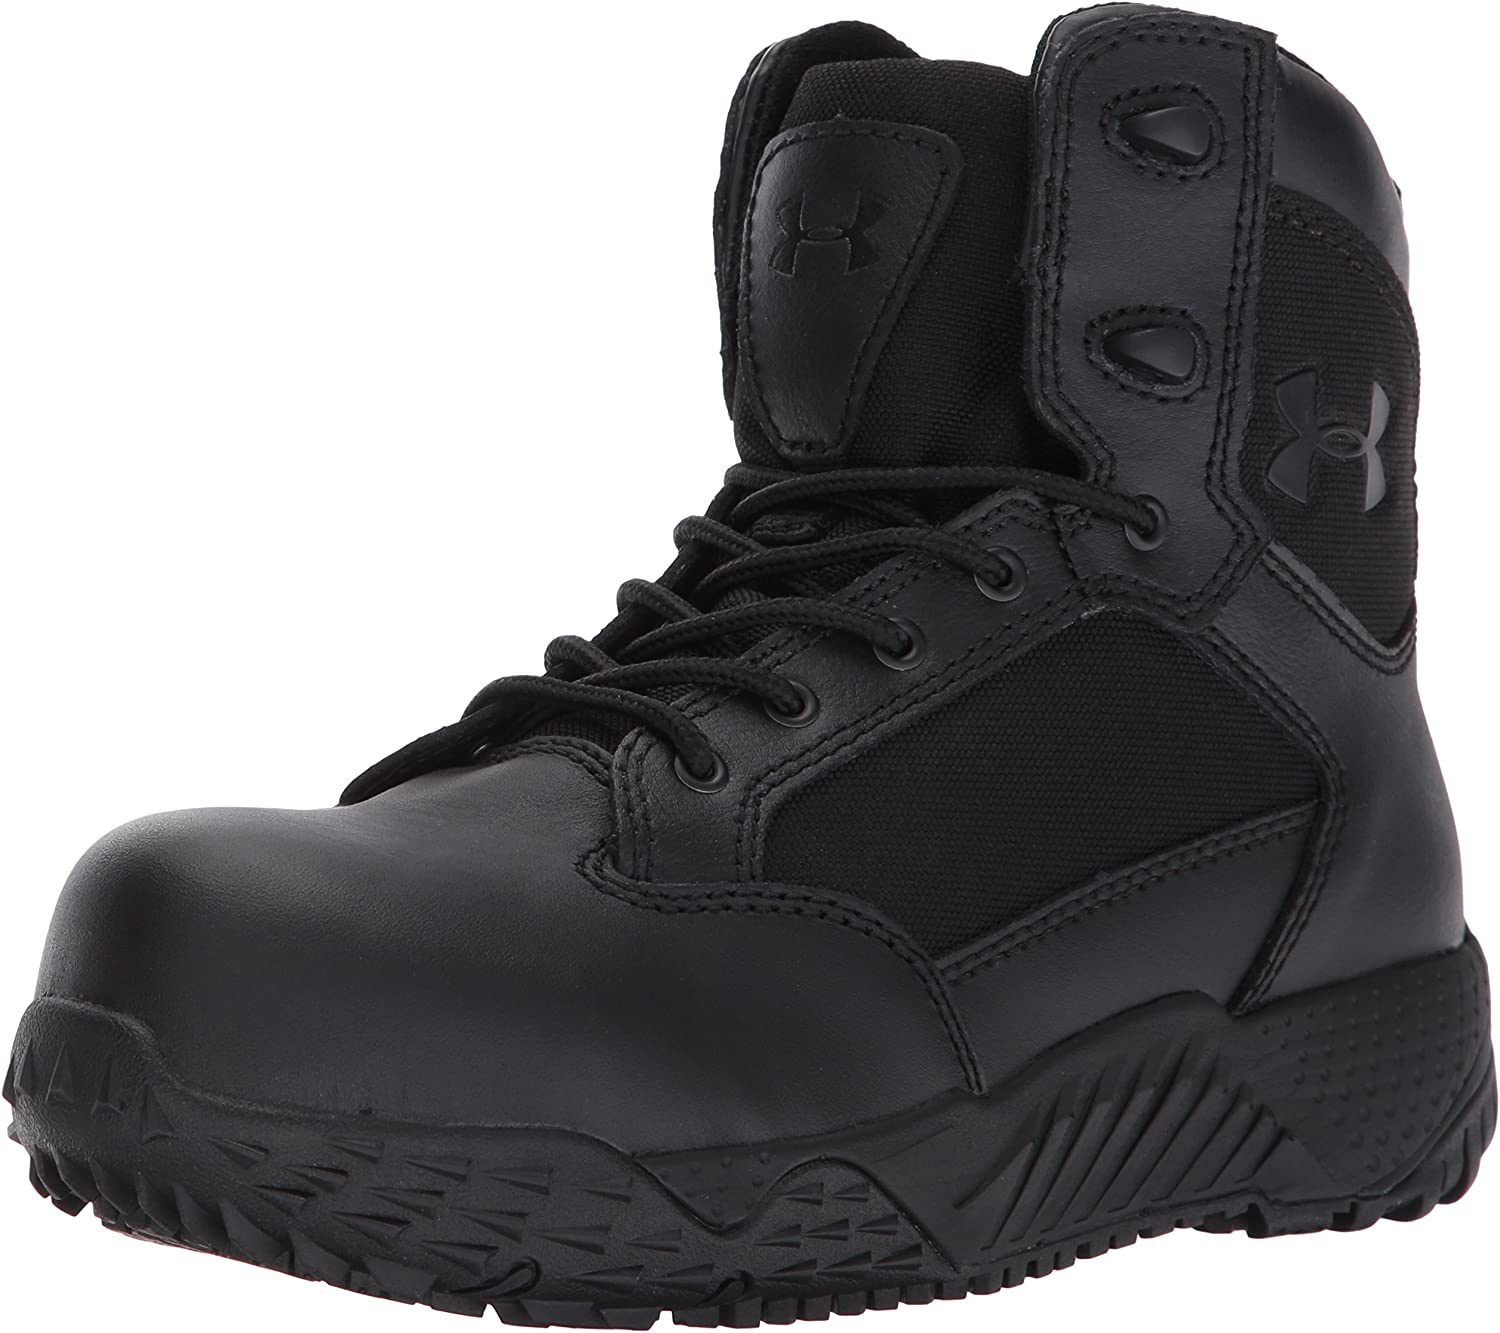 Under Armour Women's Micro G Limitless 2 Military and Tactical Boot